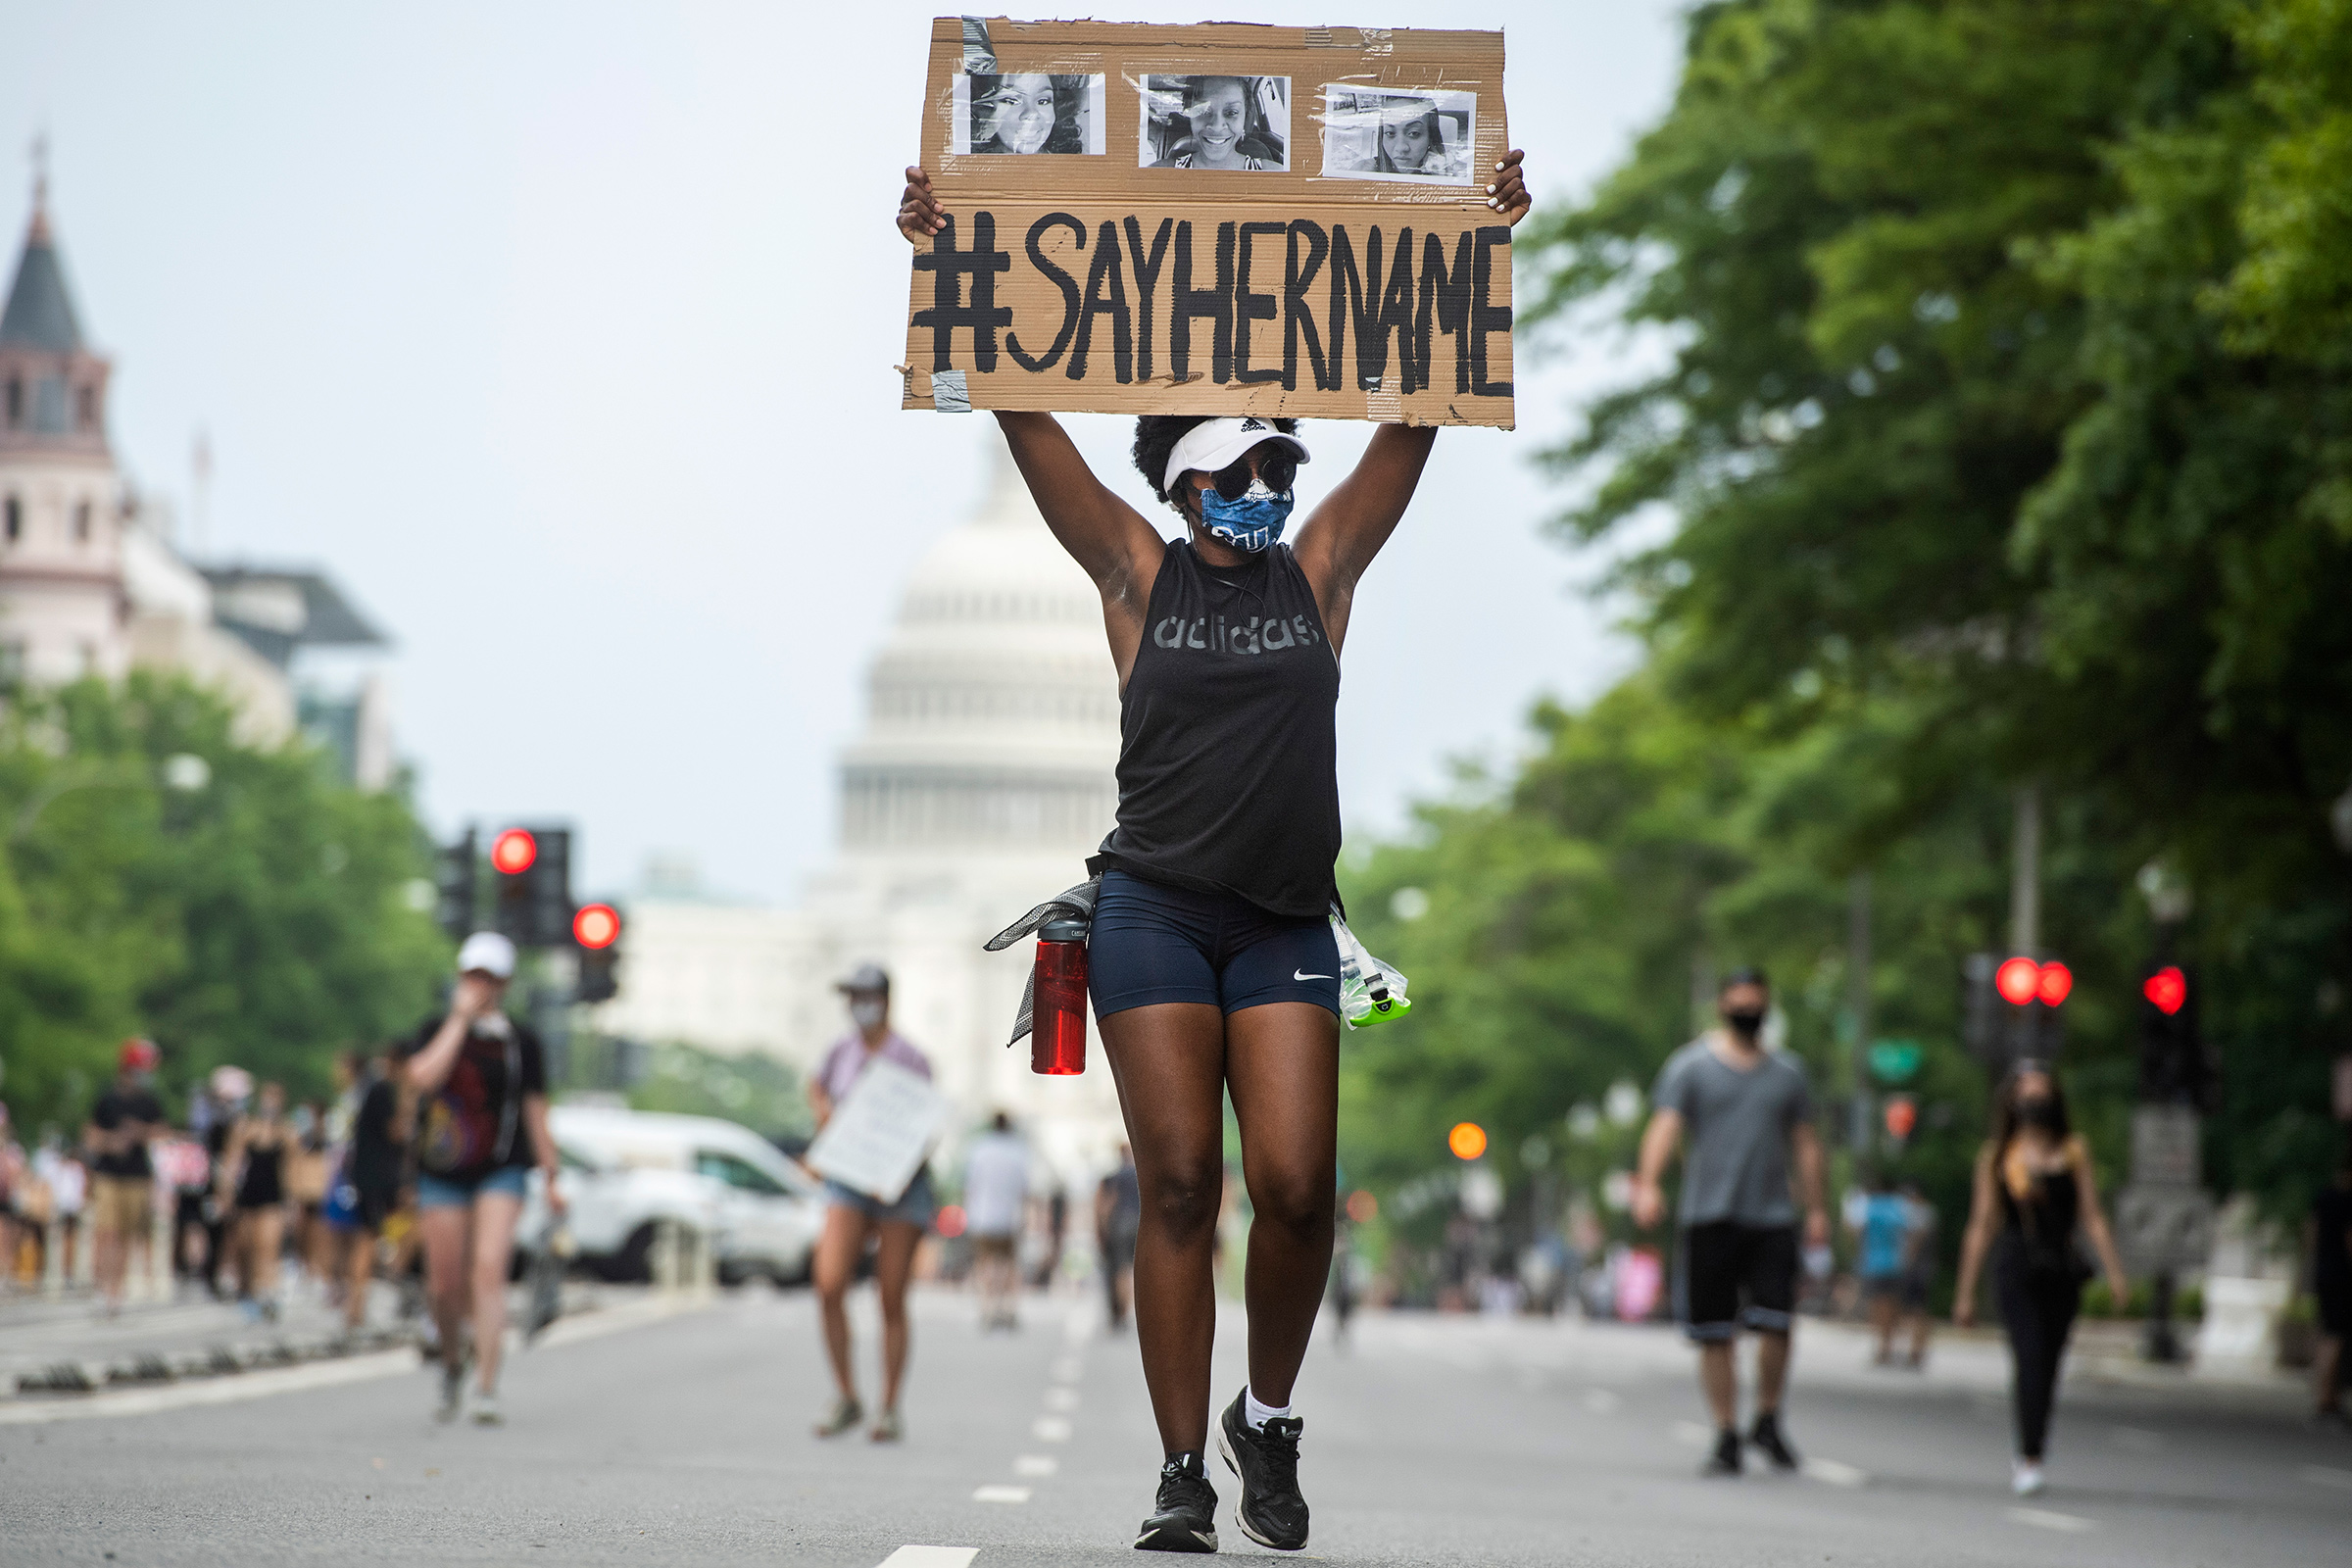 A demonstrator marches on Pennsylvania Avenue in Washington, D.C., on June 6, 2020.